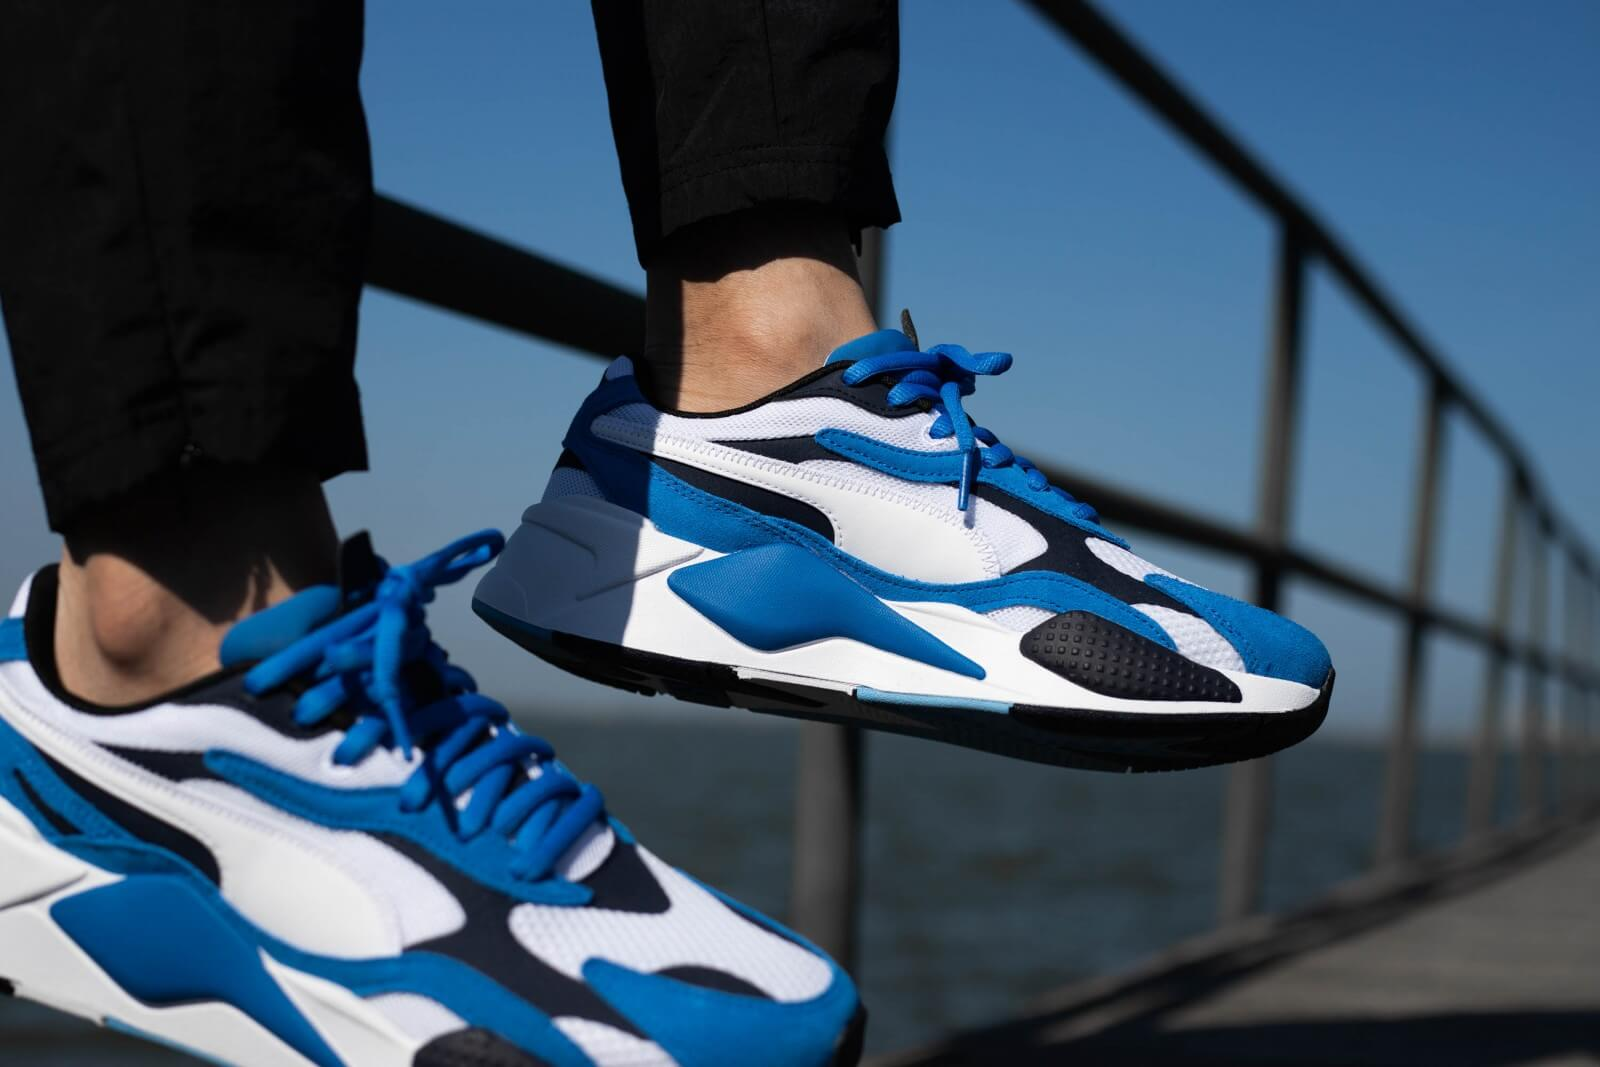 Puma RS-X3 Super Palace Blue/Puma White - 372884-02